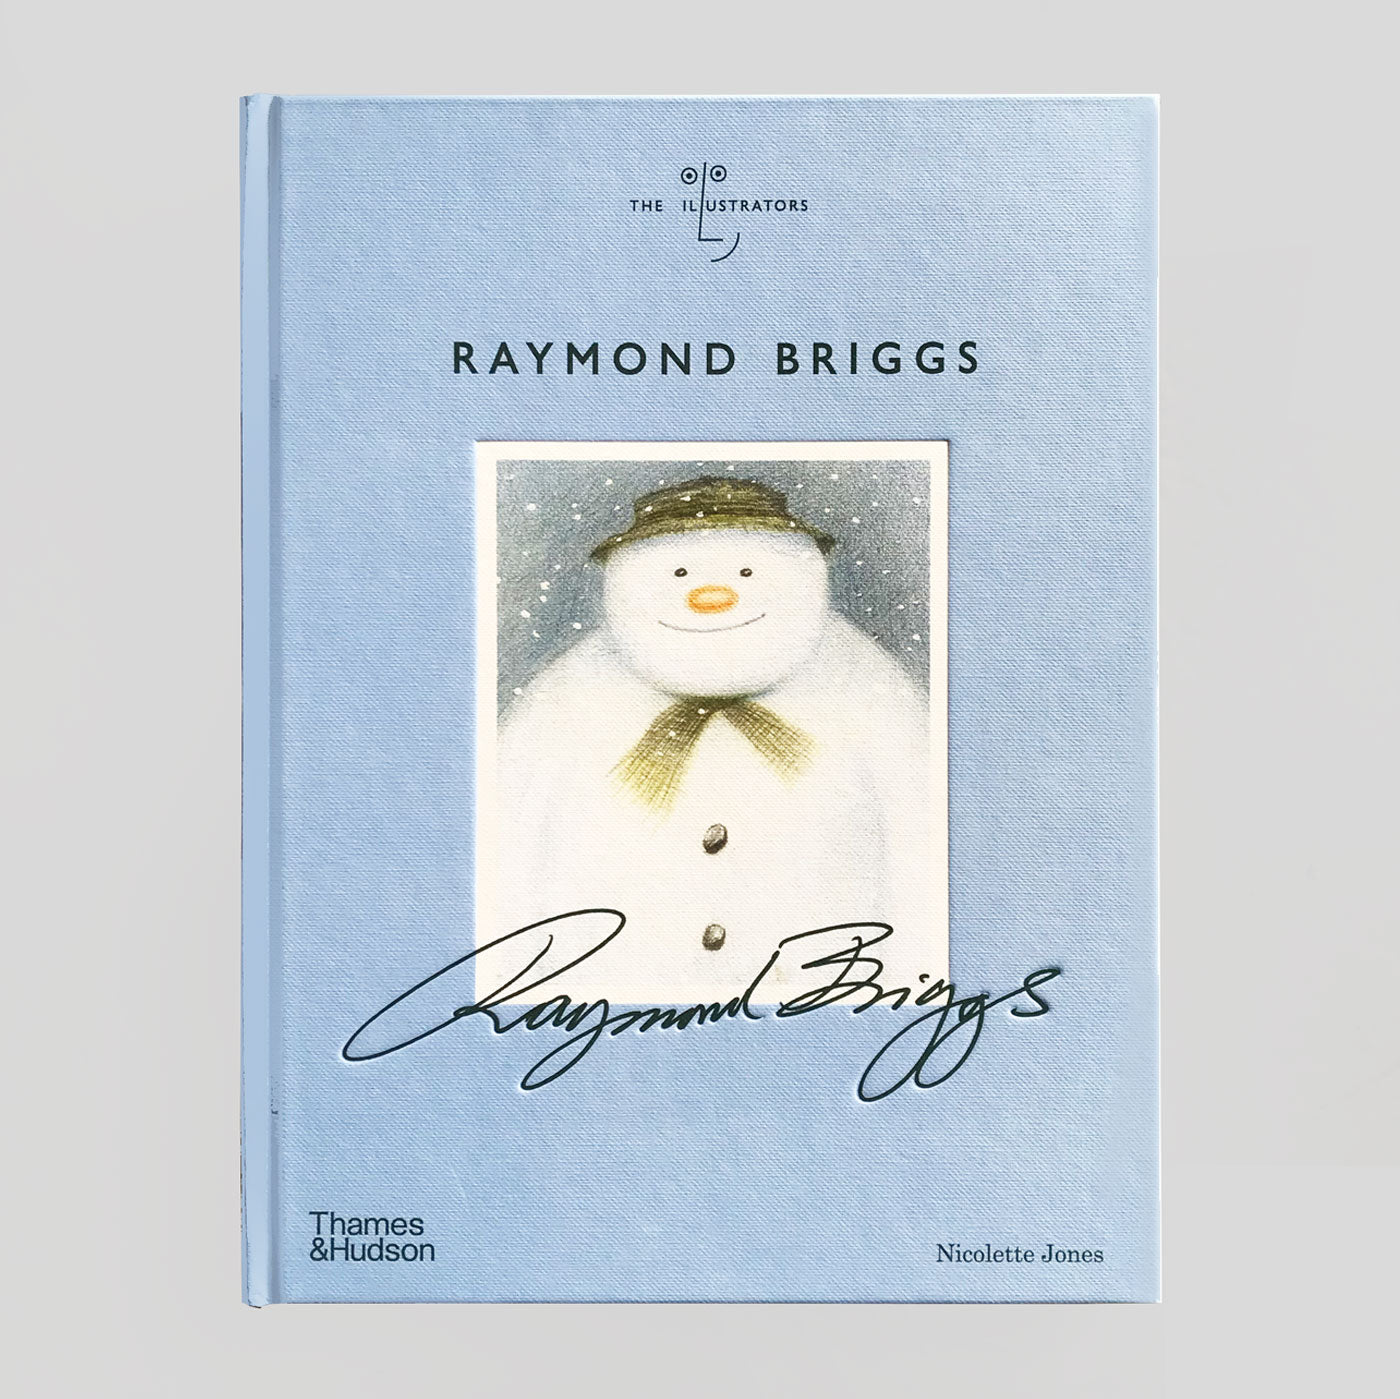 Raymond Briggs (The Illustrators)| Nicolette Jones | Colours May Vary